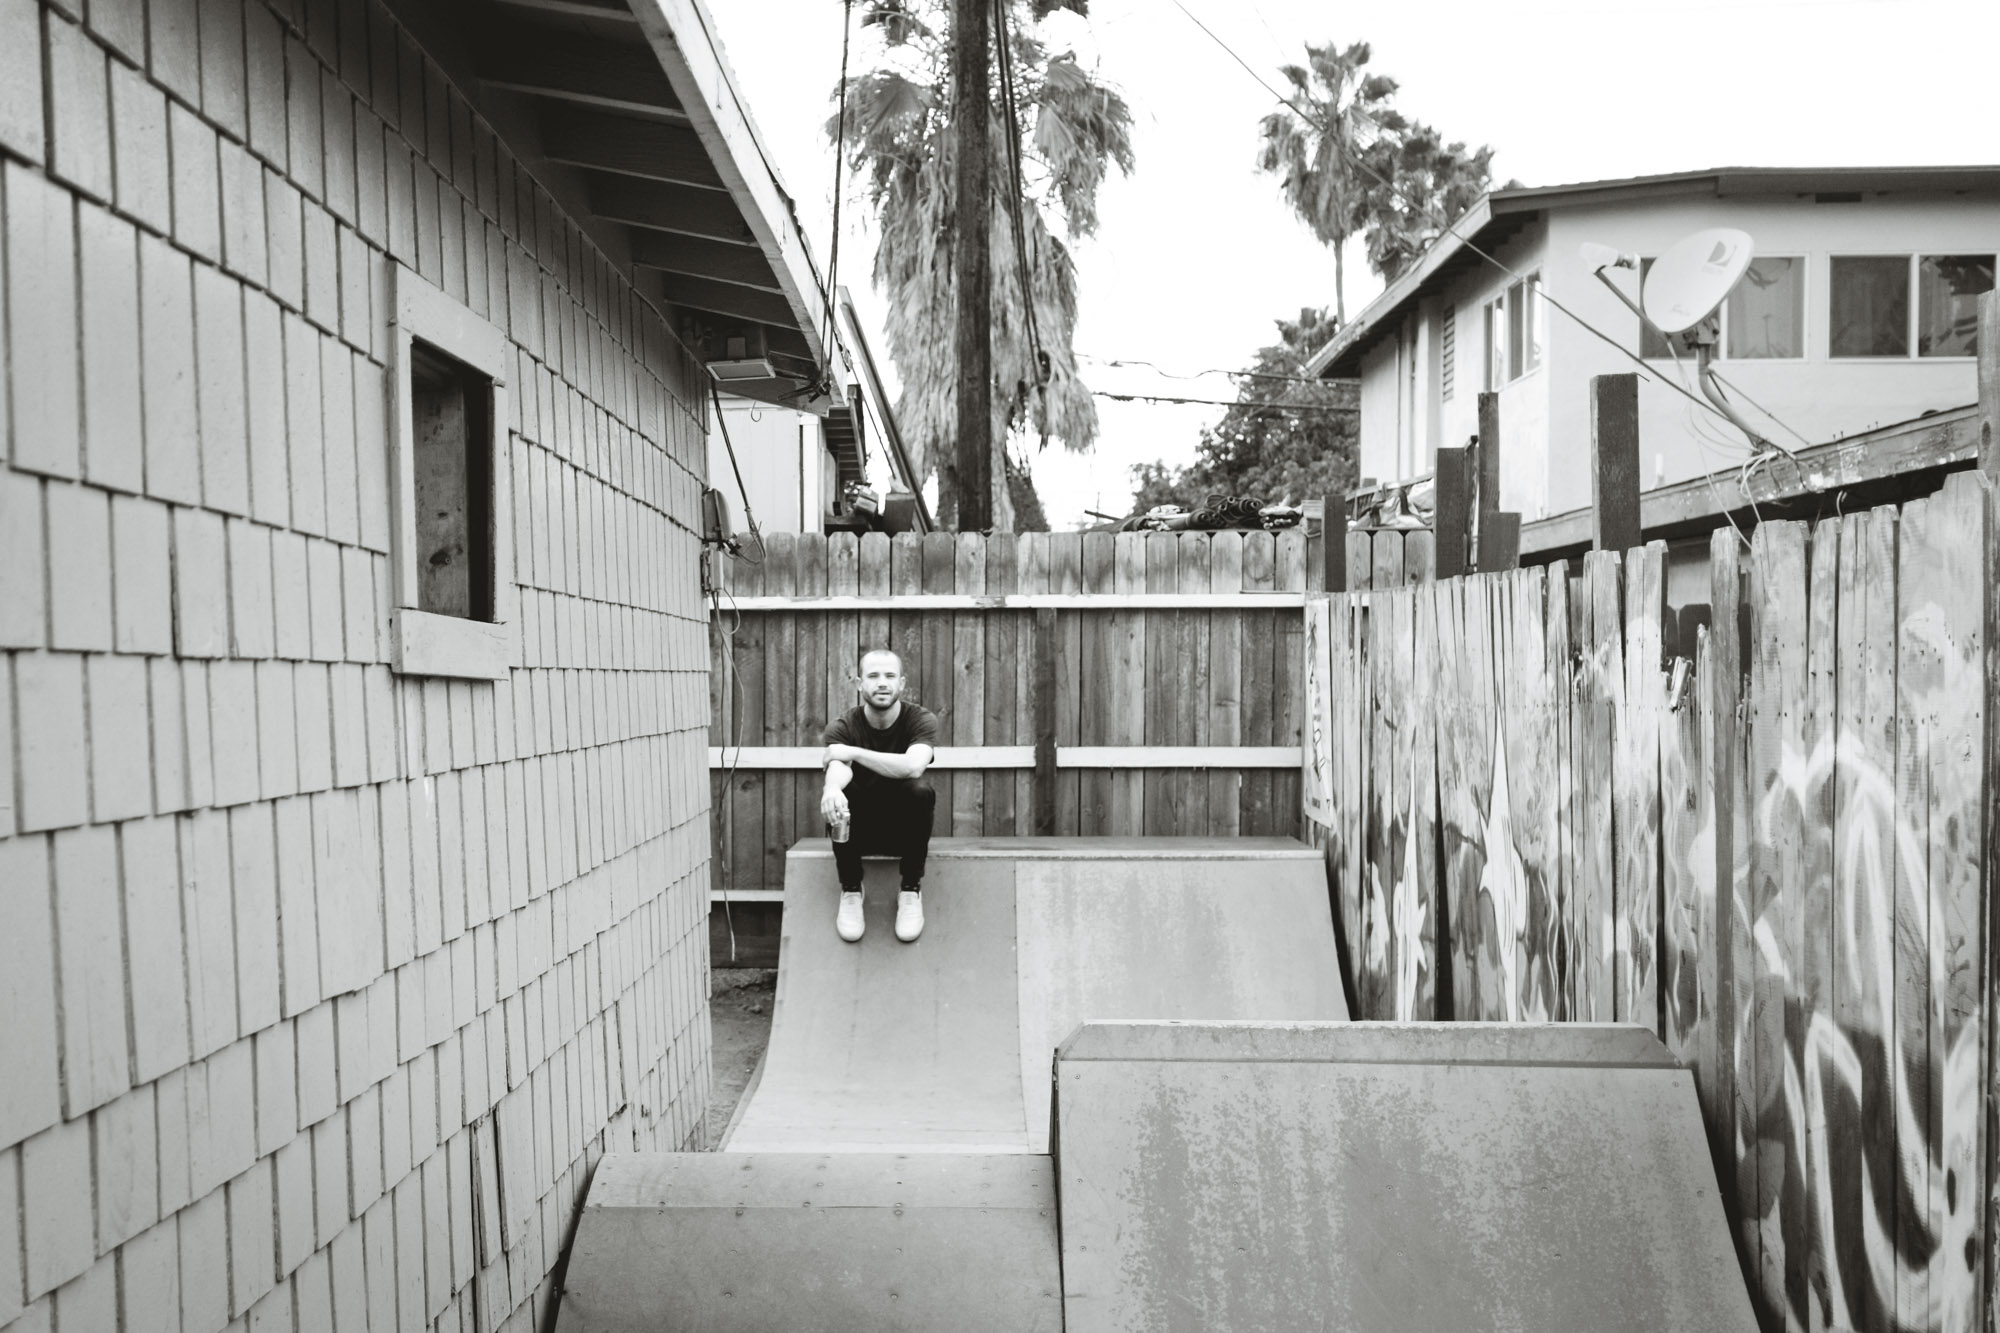 Cory sits on his ramp in his backyard.